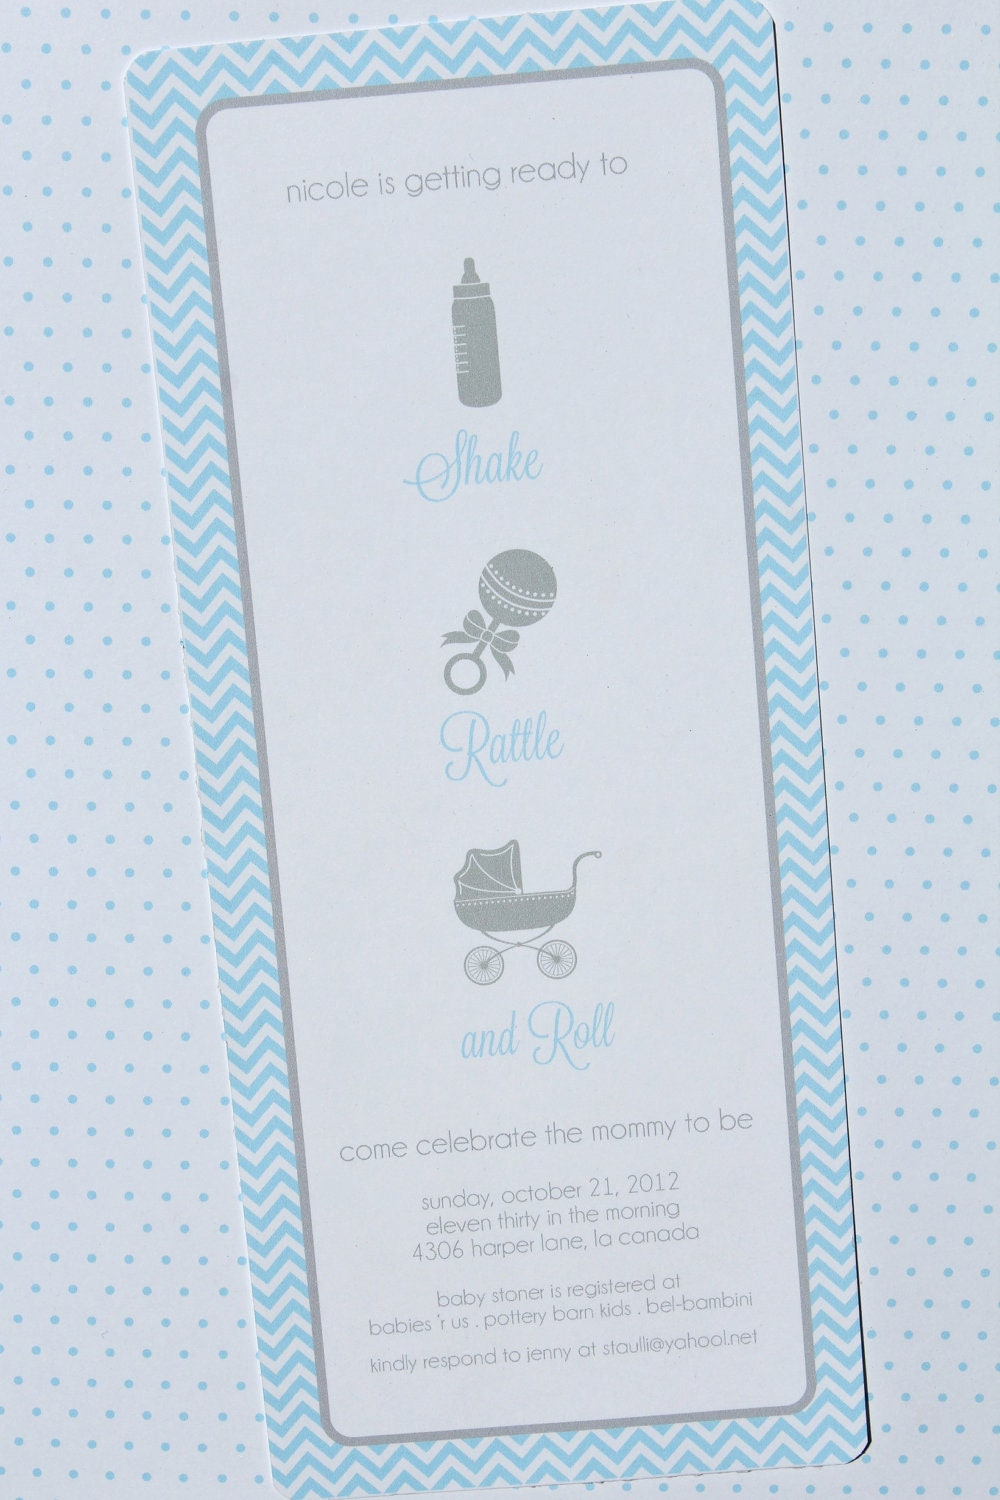 Printable Invitations Shake Rattle And Roll Baby Shower By